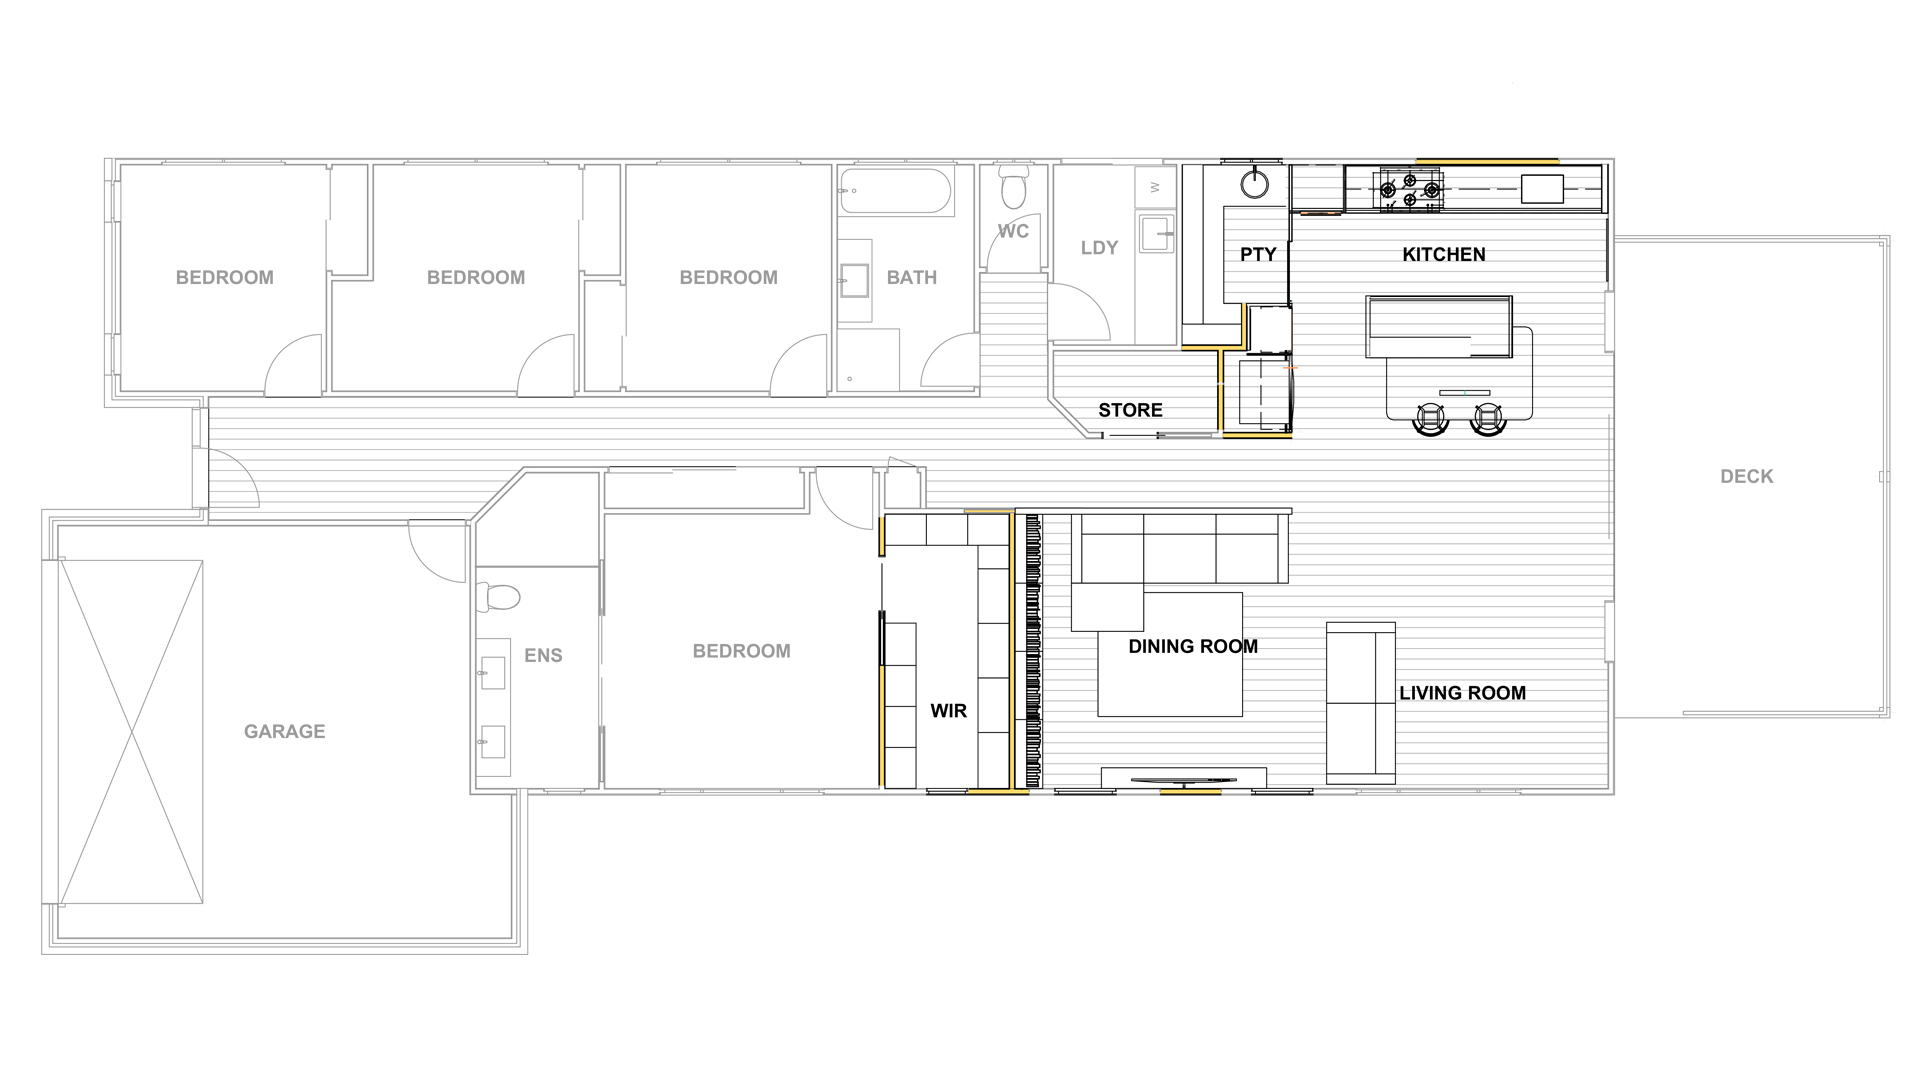 Proposed Plan, House renovation new open plan kitchen living an dining.